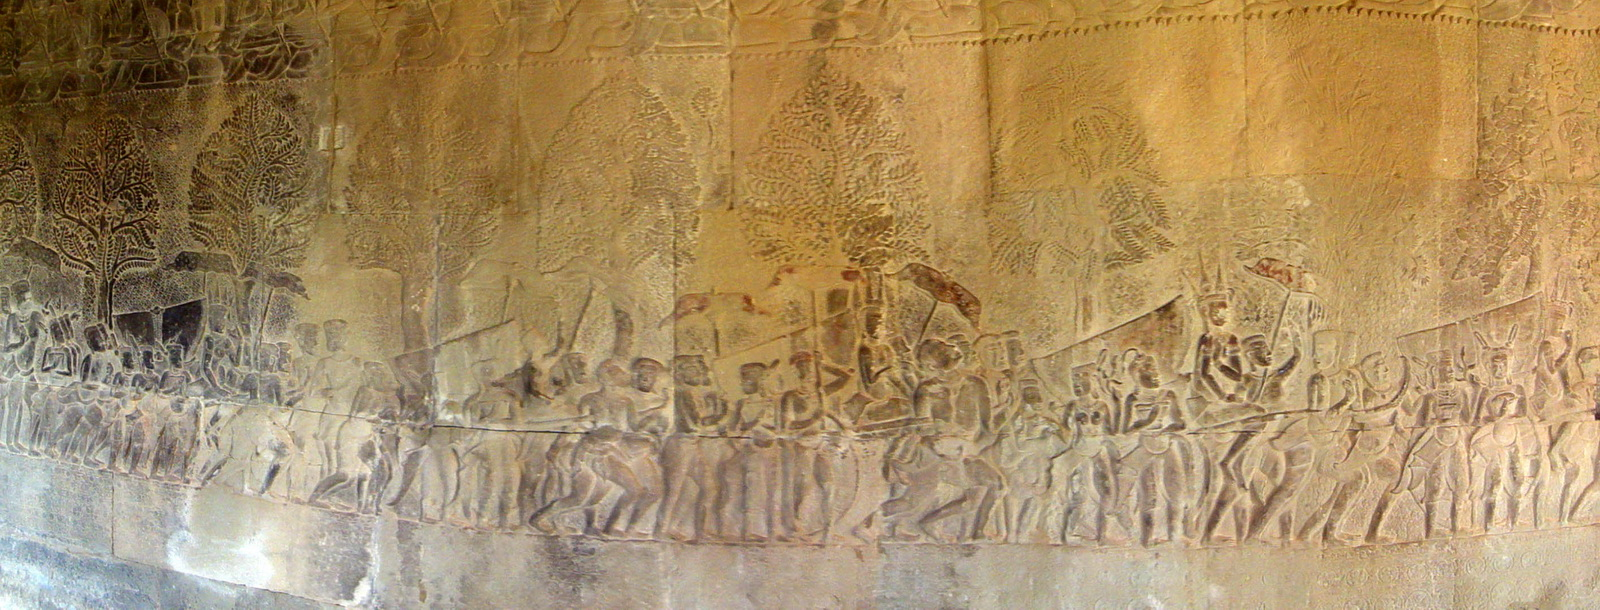 Angkor Wat Bas relief S Gallery W Wing Historic Procession 002